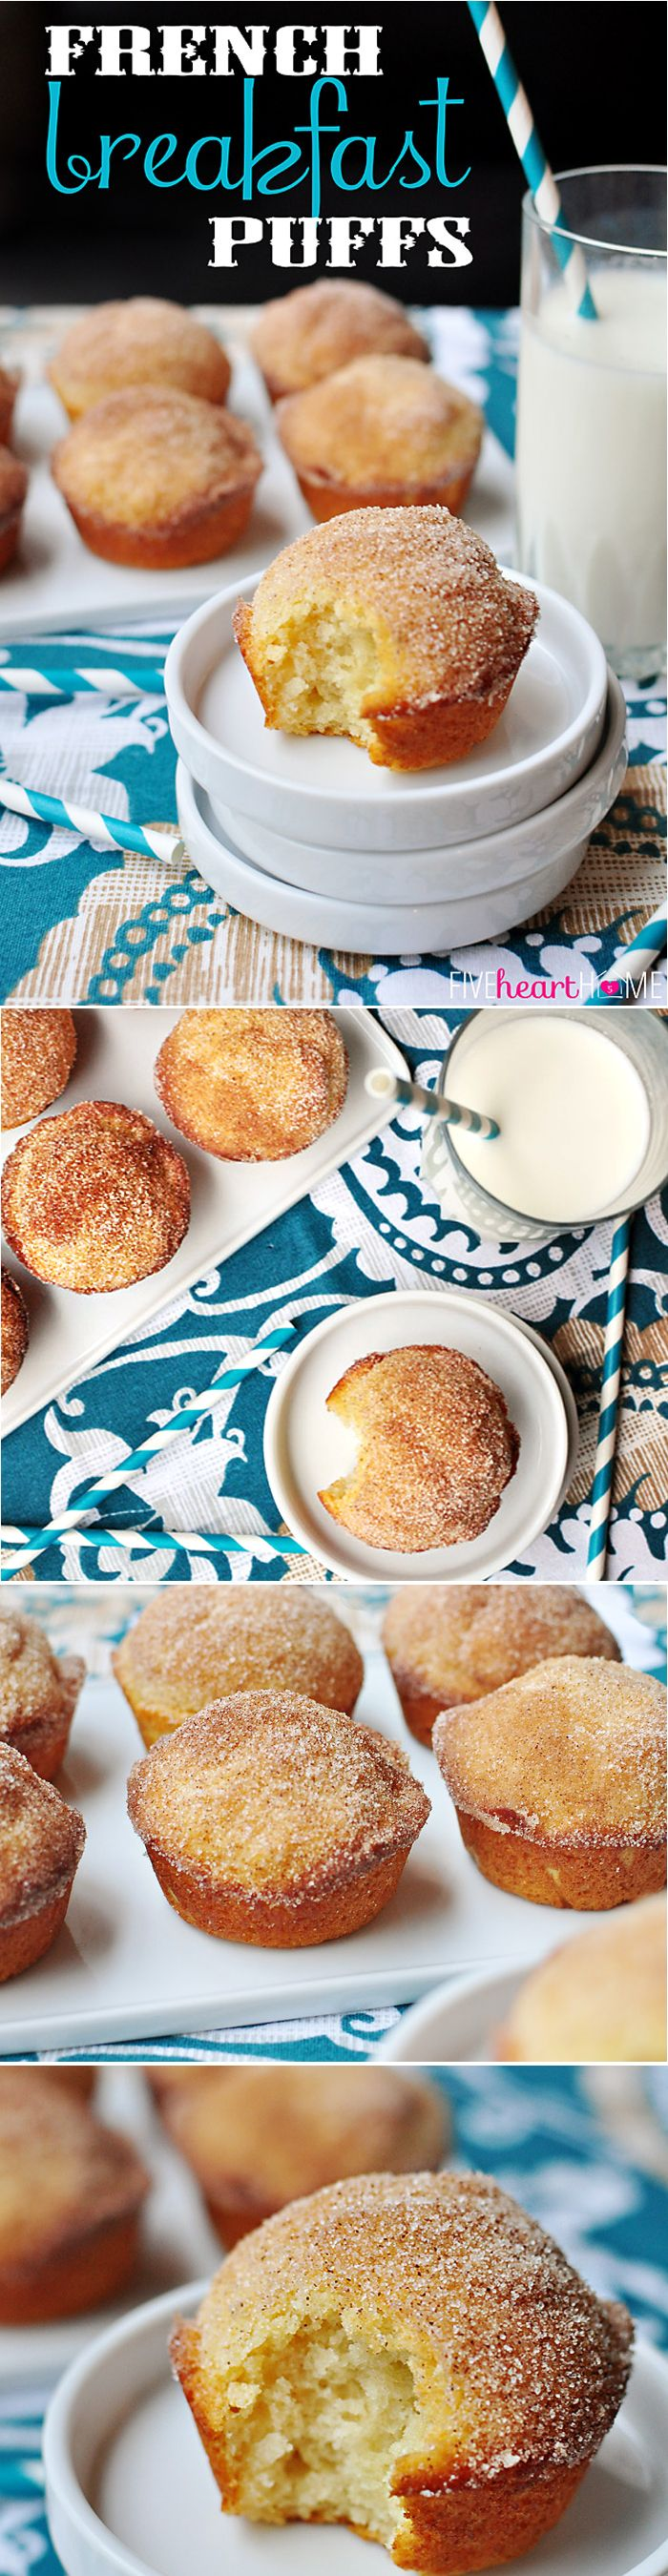 French Breakfast Puffs ~ tender vanilla muffins are drenched in melted butter and dipped in cinnamon sugar for a sweet and crunchy coating that makes breakfast time a treat!   FiveHeartHome.com